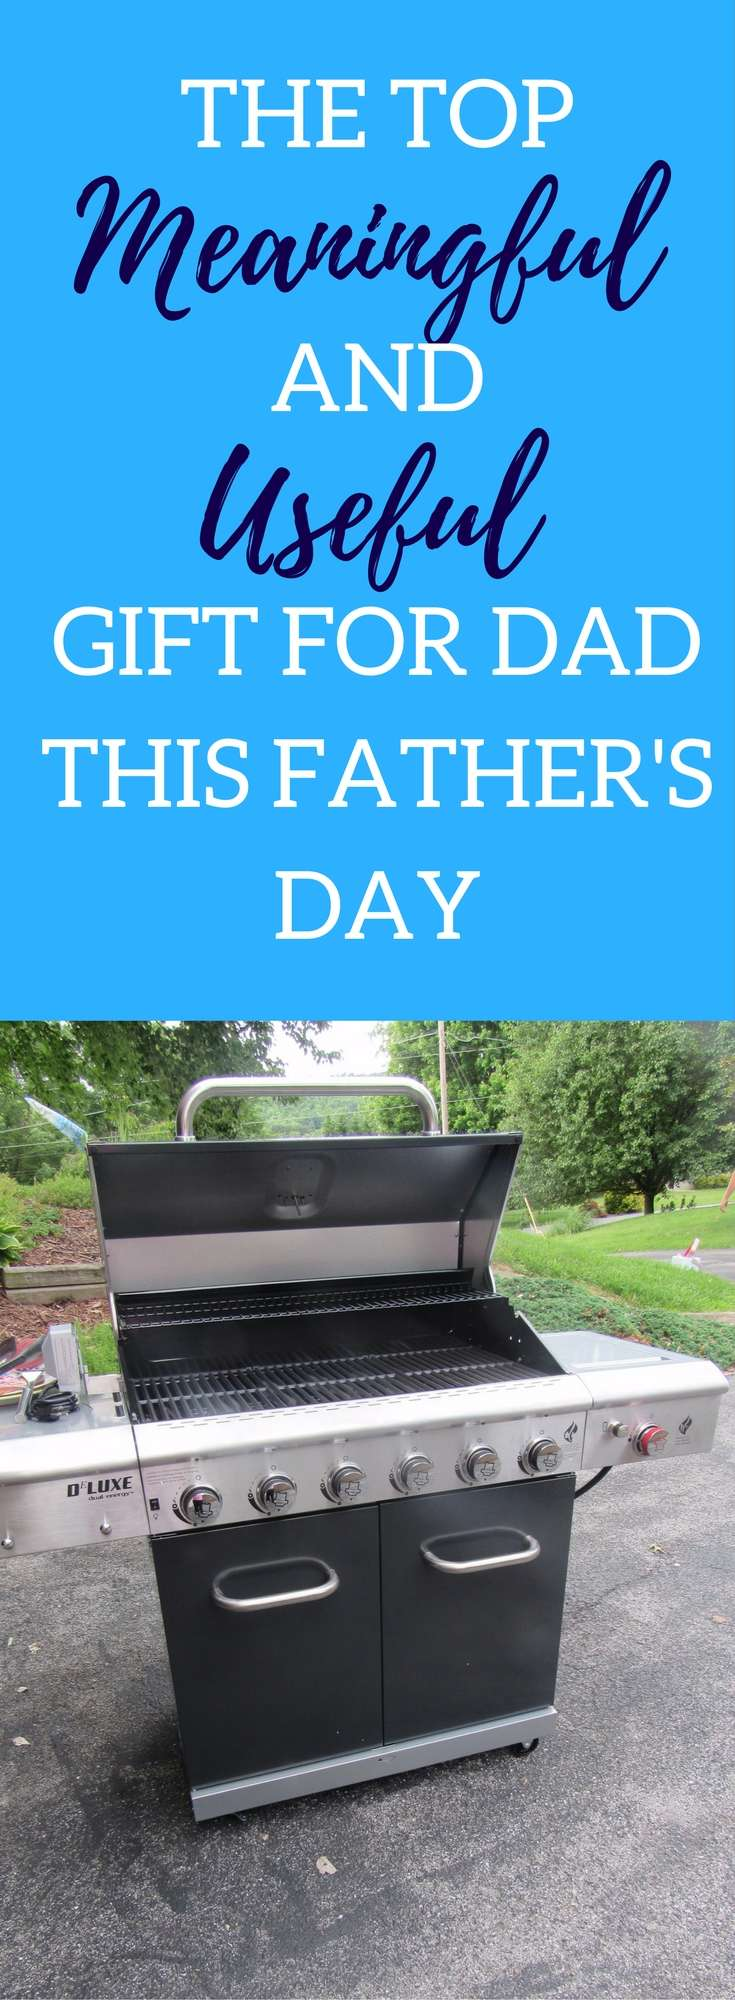 The Top Meaningful and Useful Gift for Dad This Father's Day | Father's Day Gift | Gift Guide | Gift for Dad | Gift for Grandpa | 2017 Father's Day |  #ad